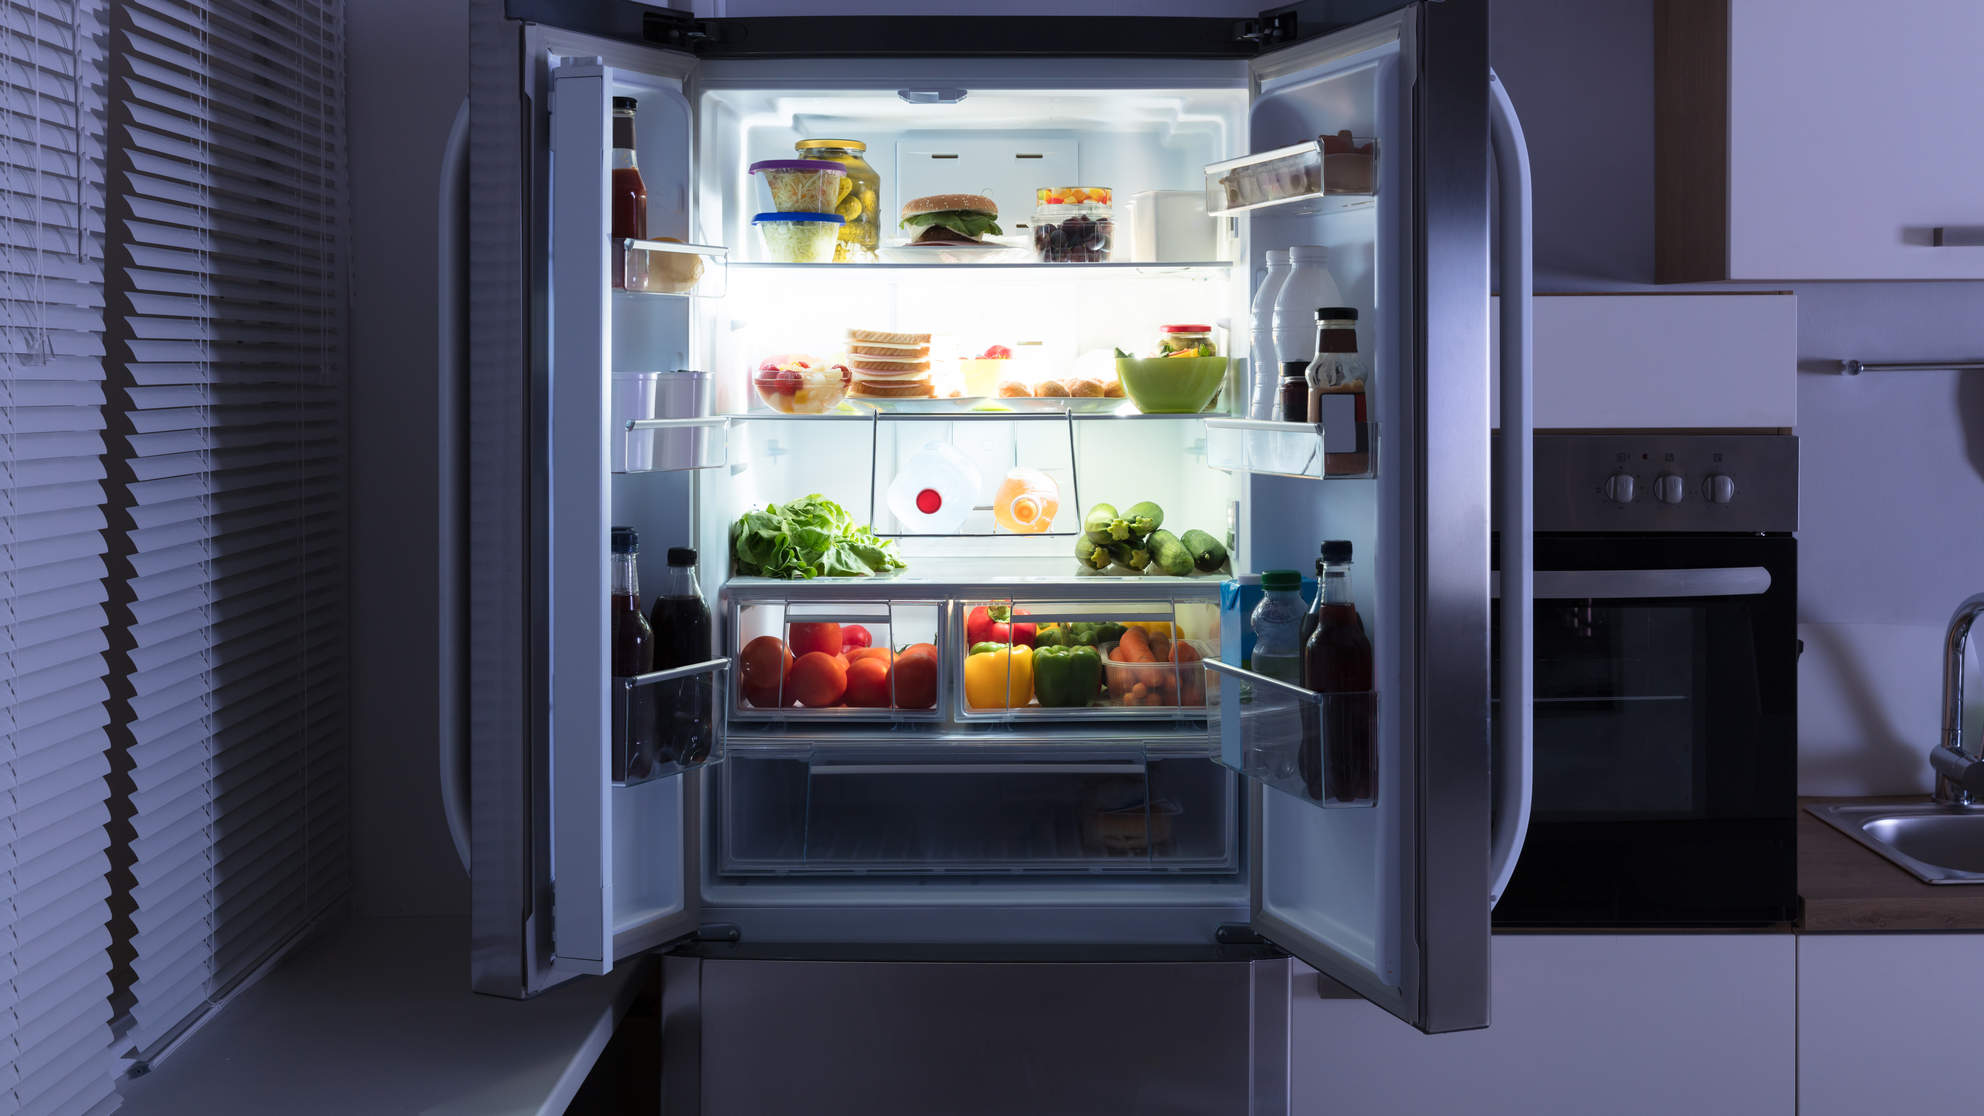 fridge food veggies diet woman health wellbeing